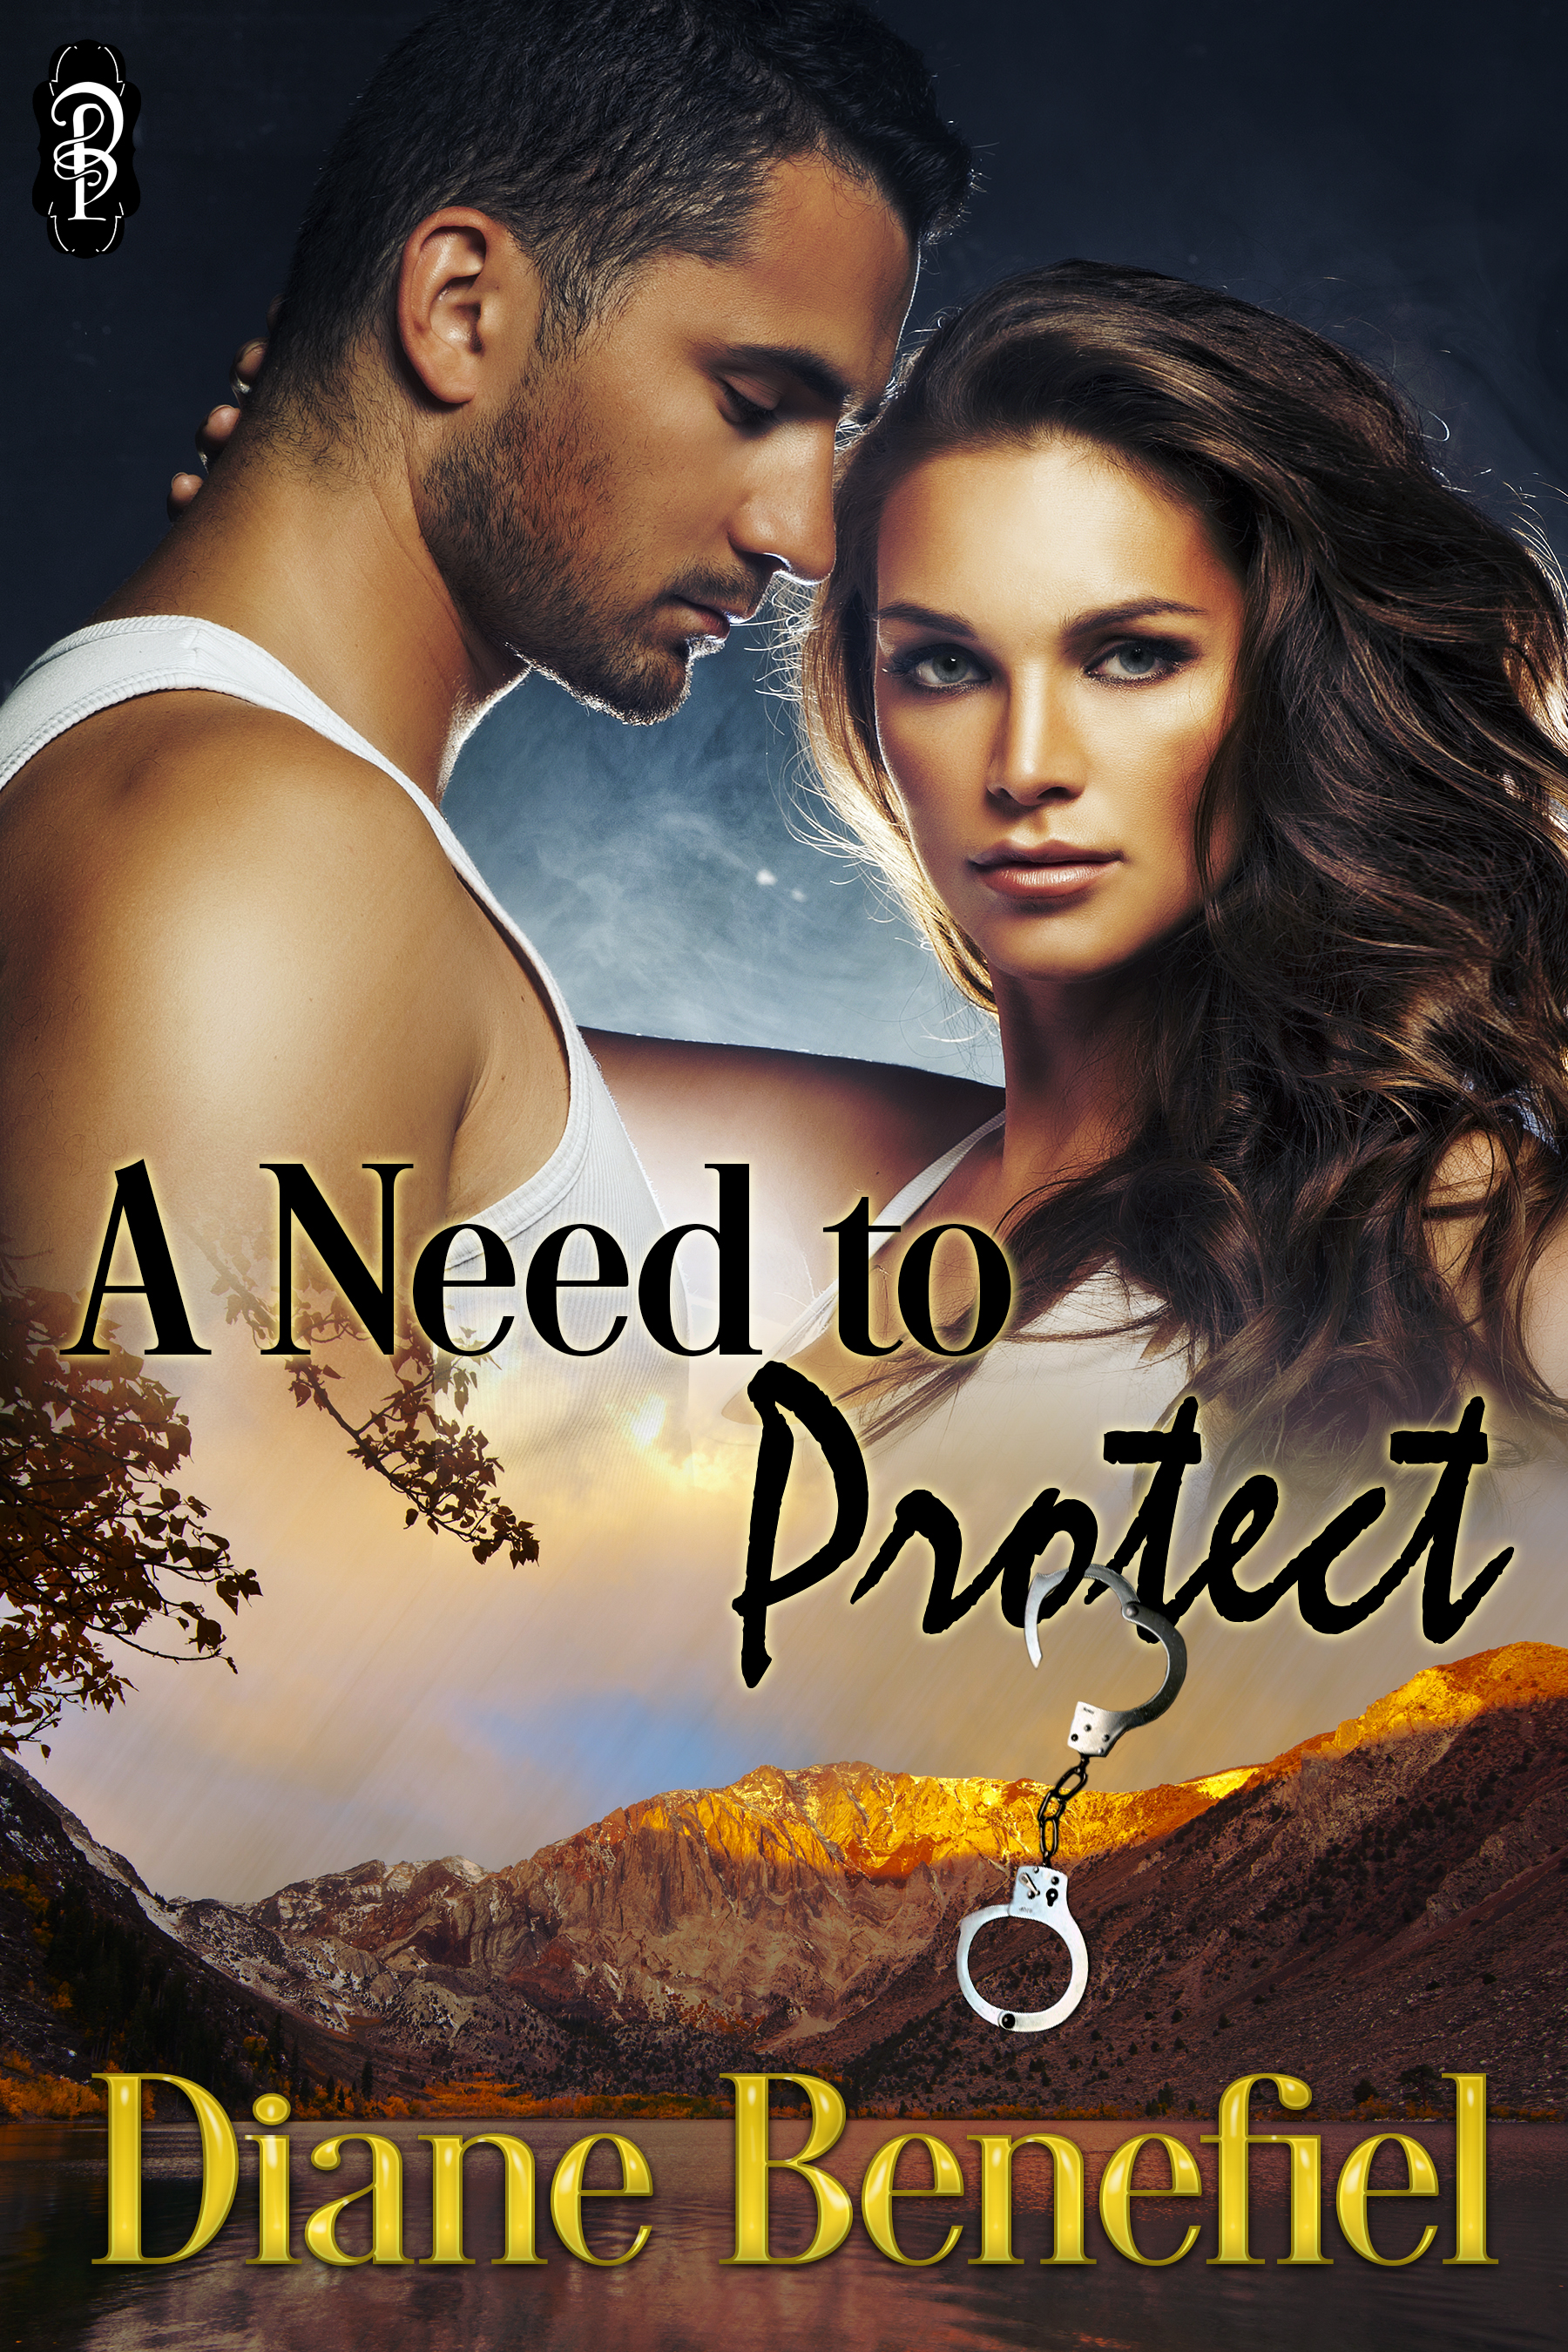 a need to protect by diane benefiel